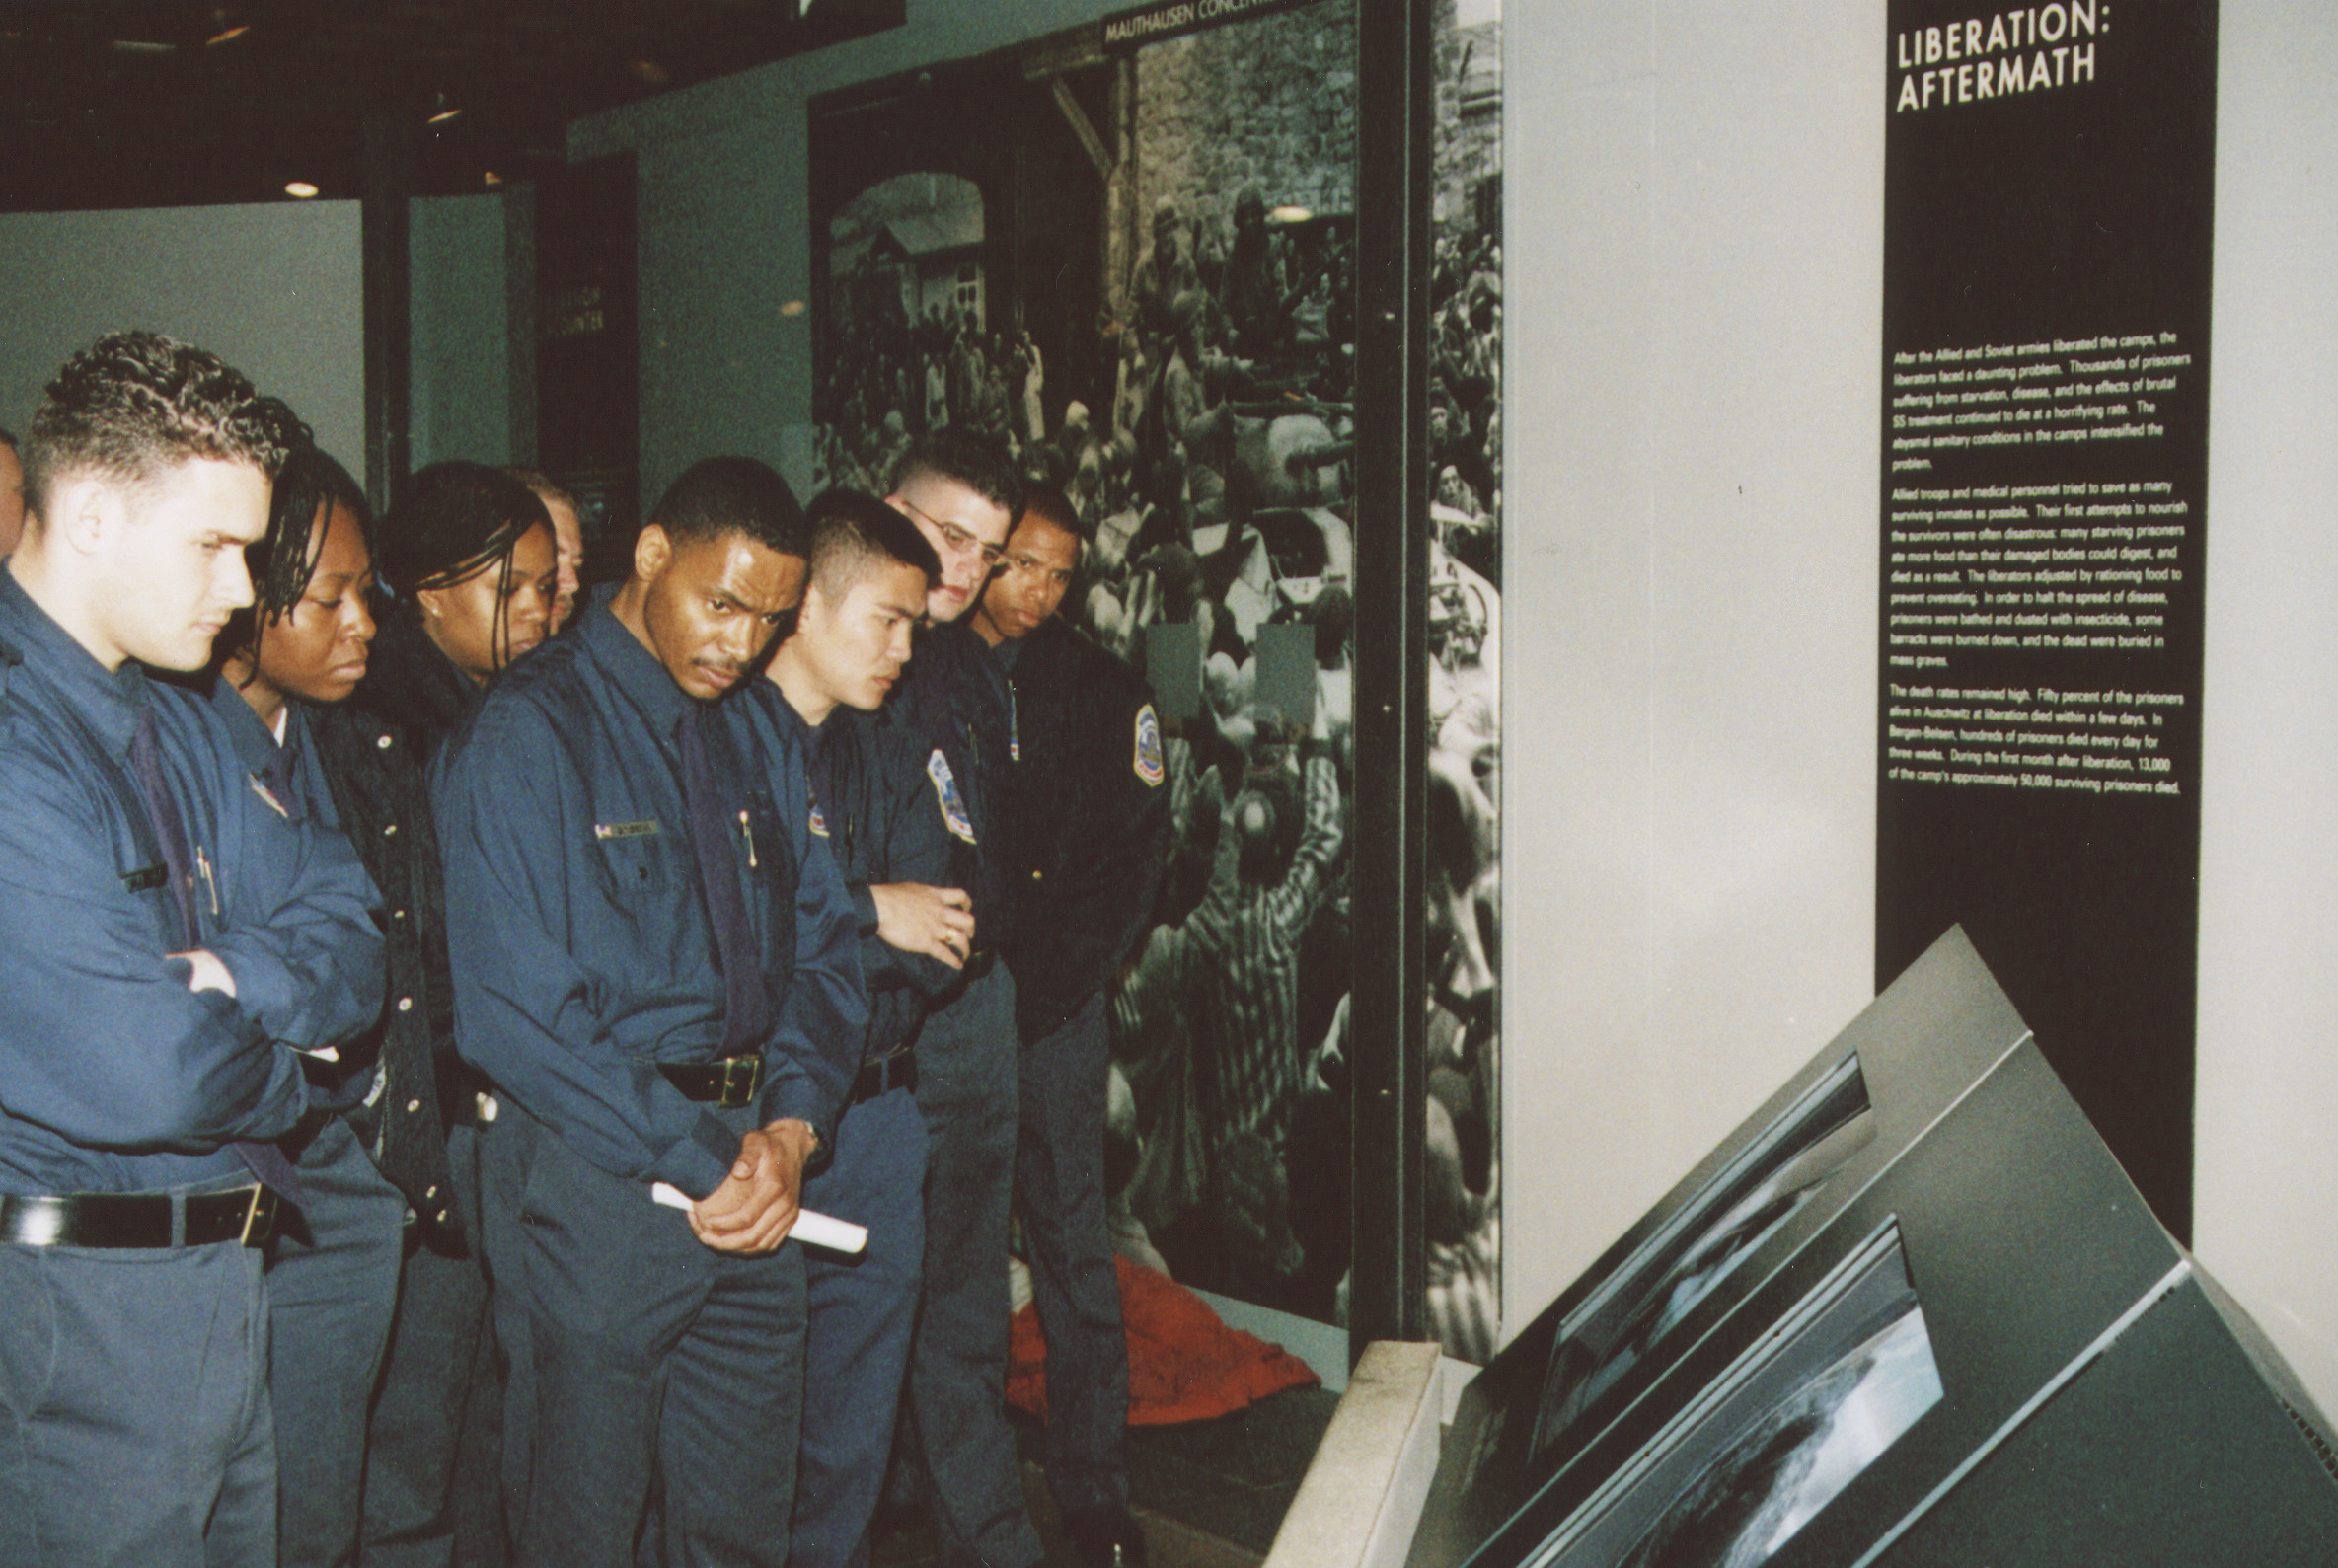 DC police training squad visits the U.S. Holocaust Memorial Museum.  Officers view the Liberation segment of the Permanent Exhibition.